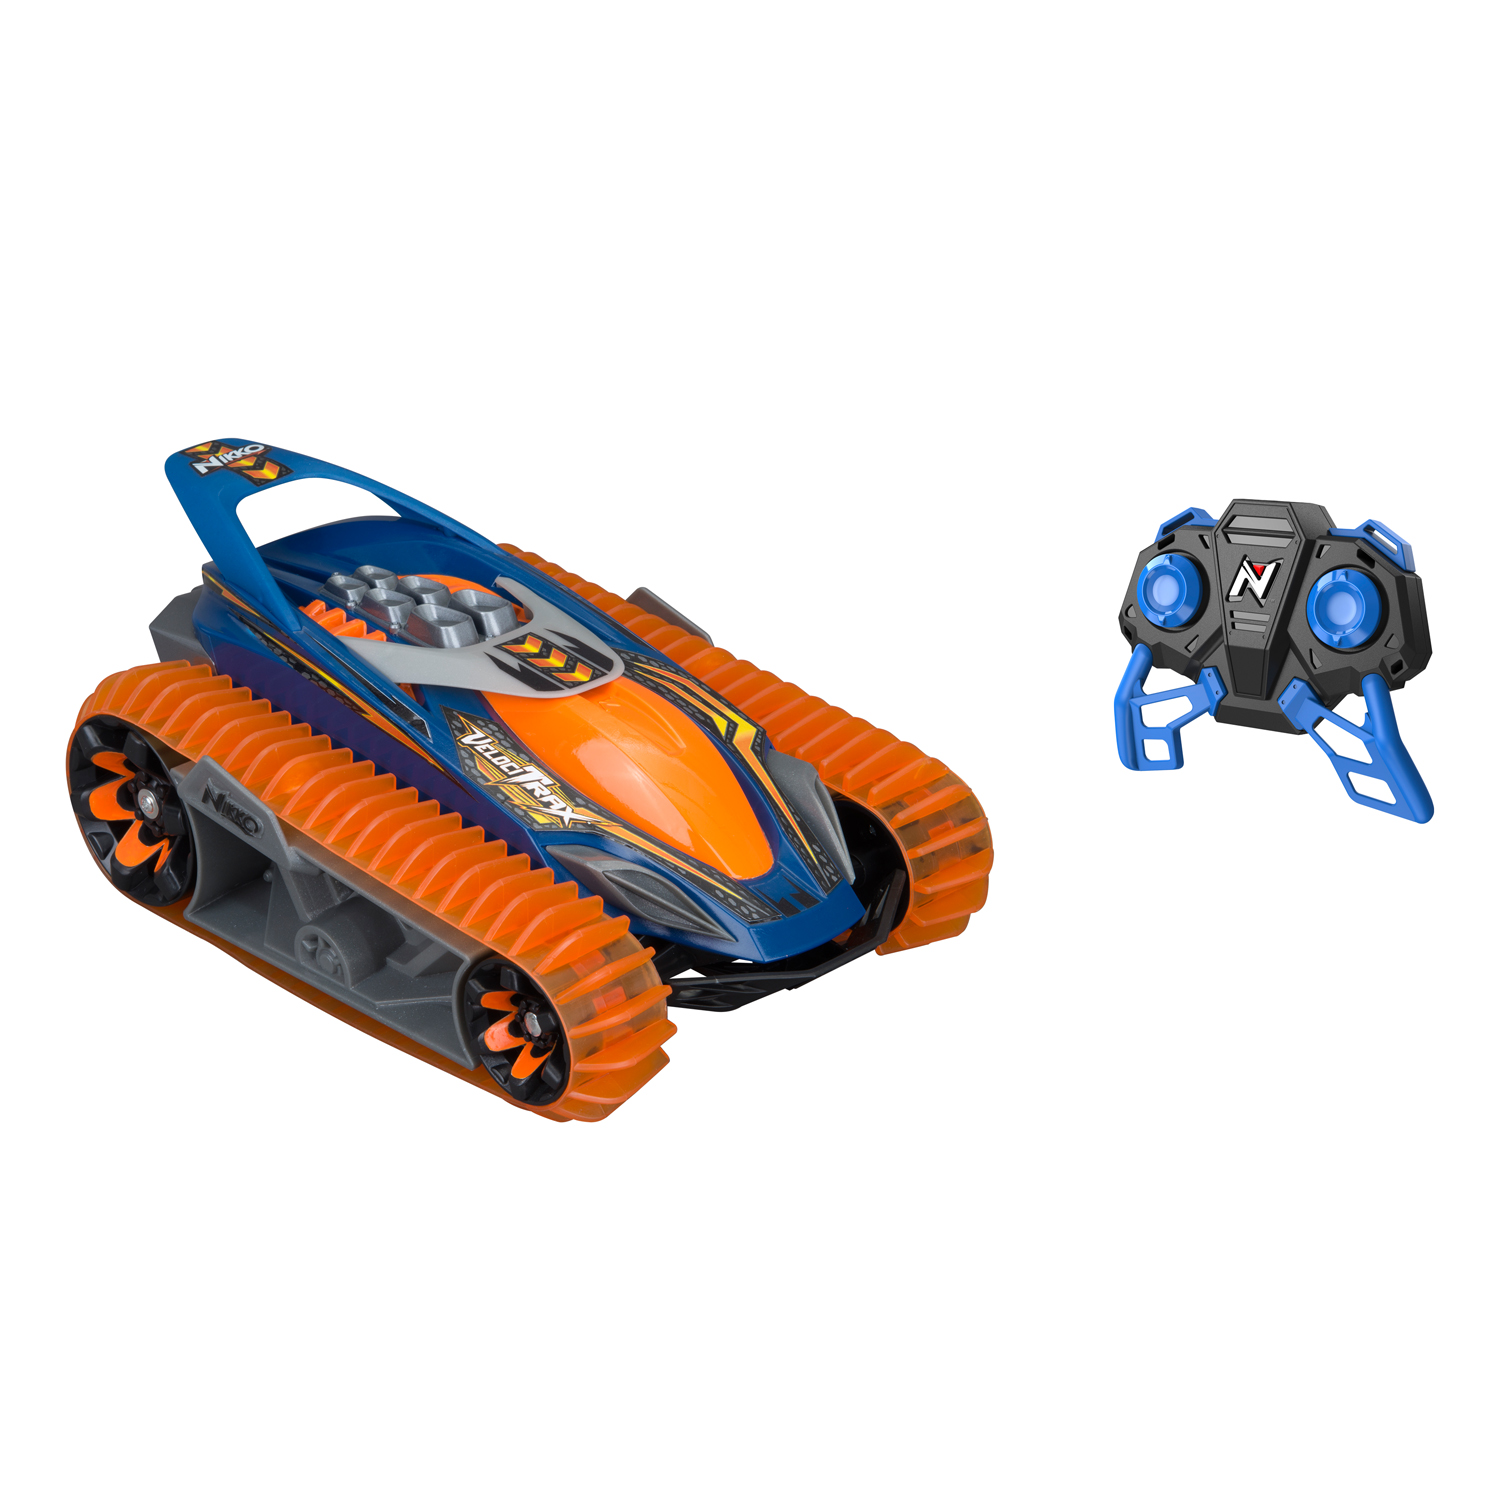 Nikko RC Velocitrax Electric Orange Vehicle